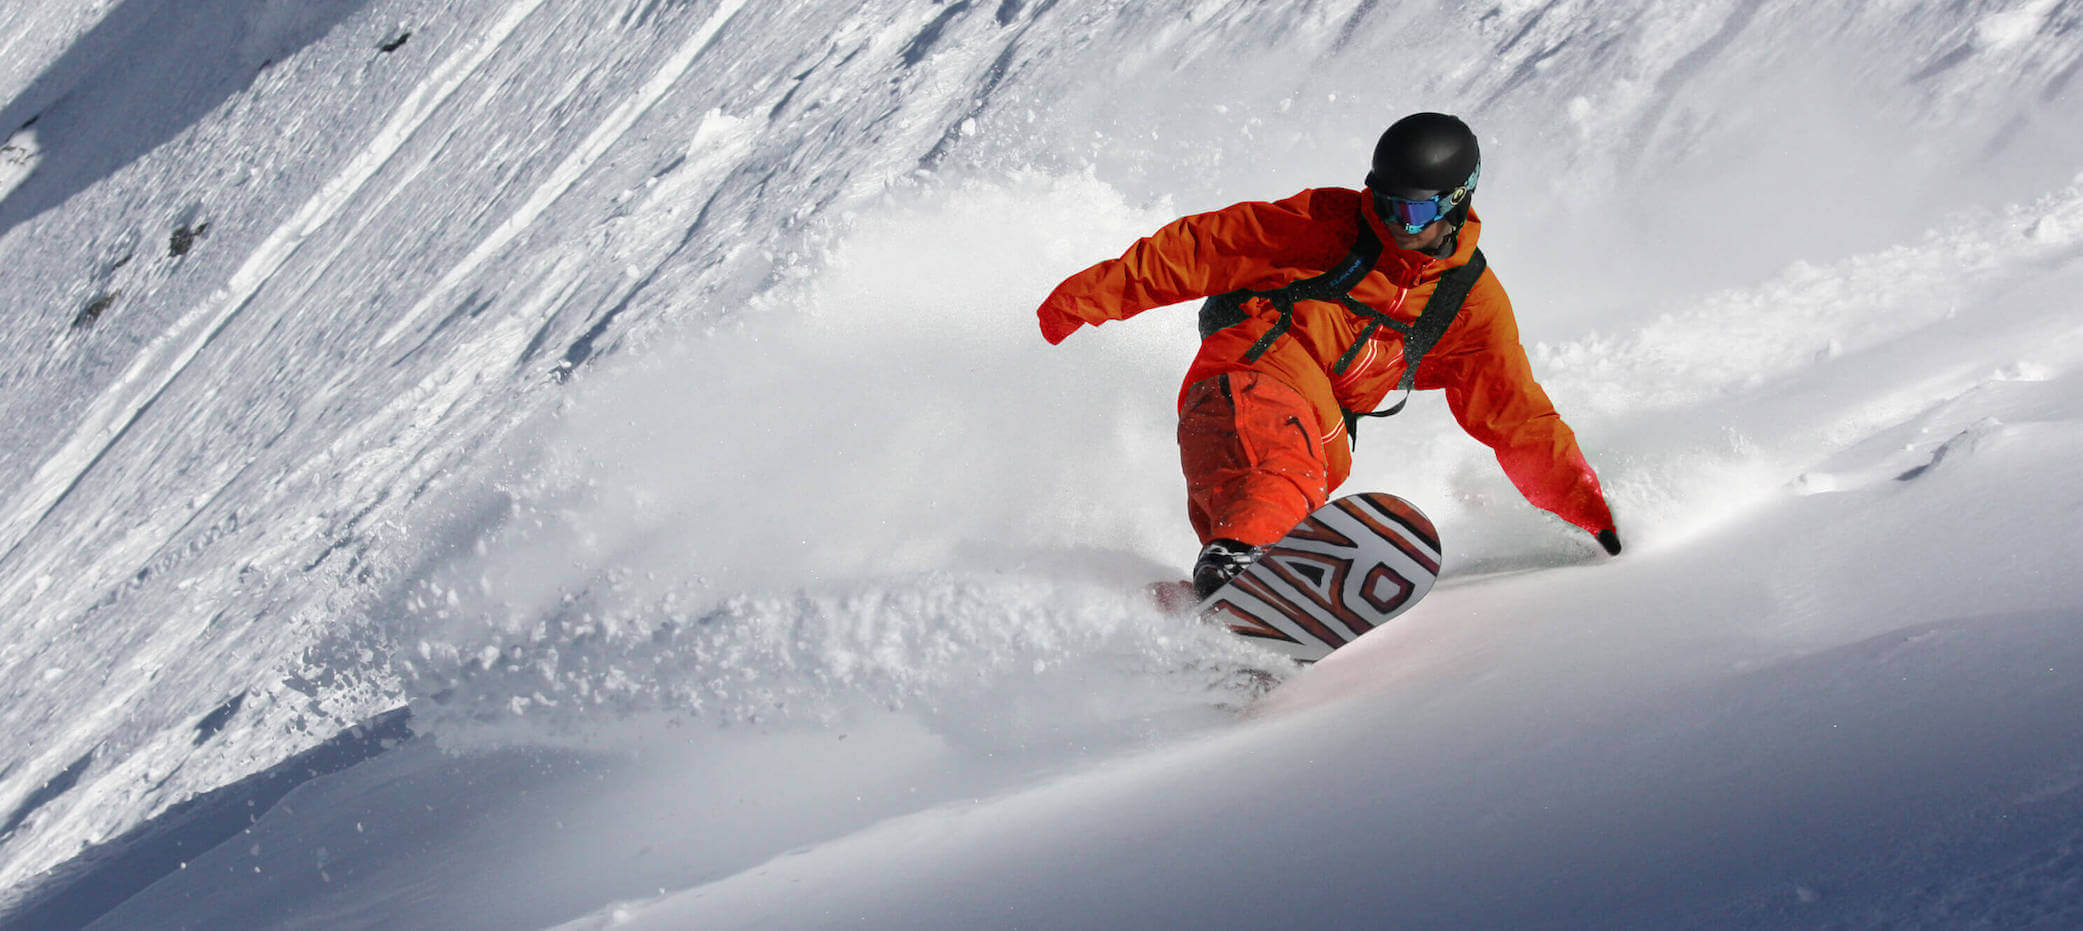 Onyx Snowboard School - Morzine, Avoriaz, Les Gets and throughout the UK